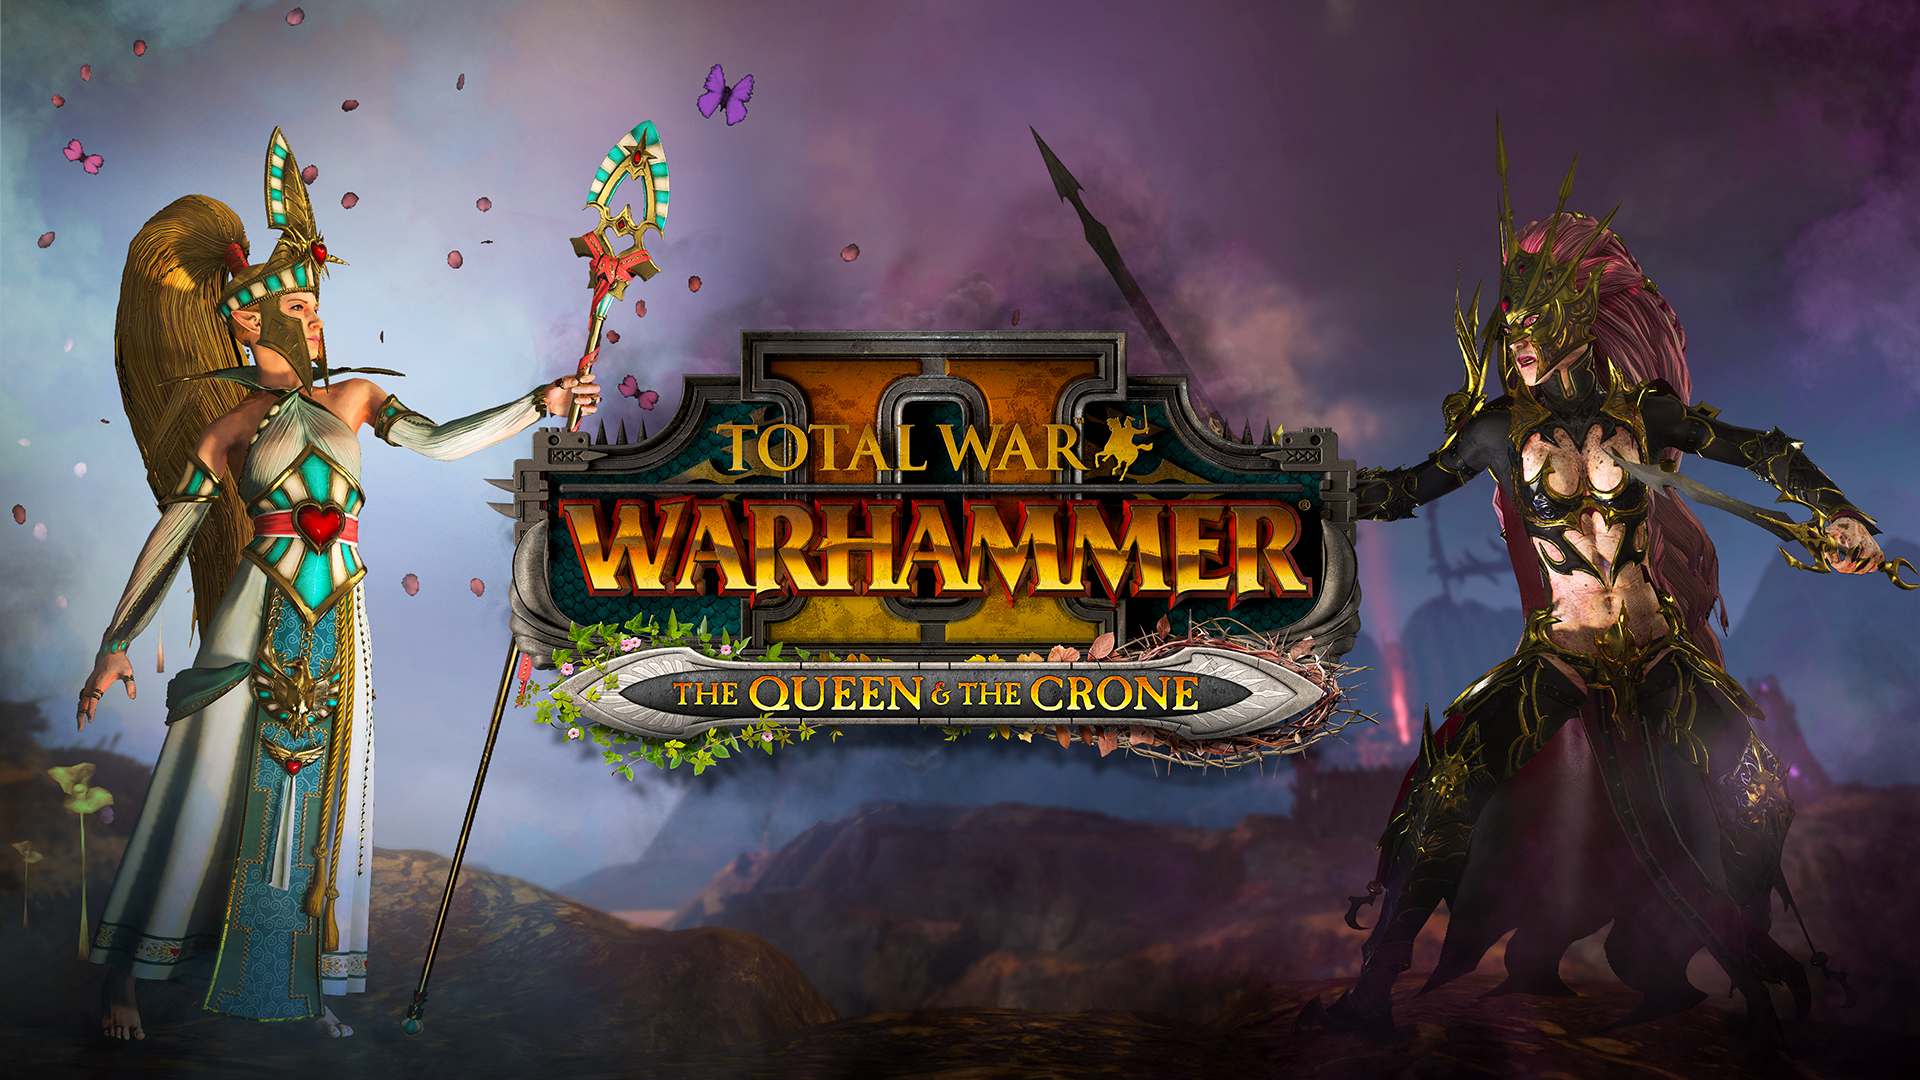 Dylan Sprouse Voice Acts in Total War DLC The Queen and the